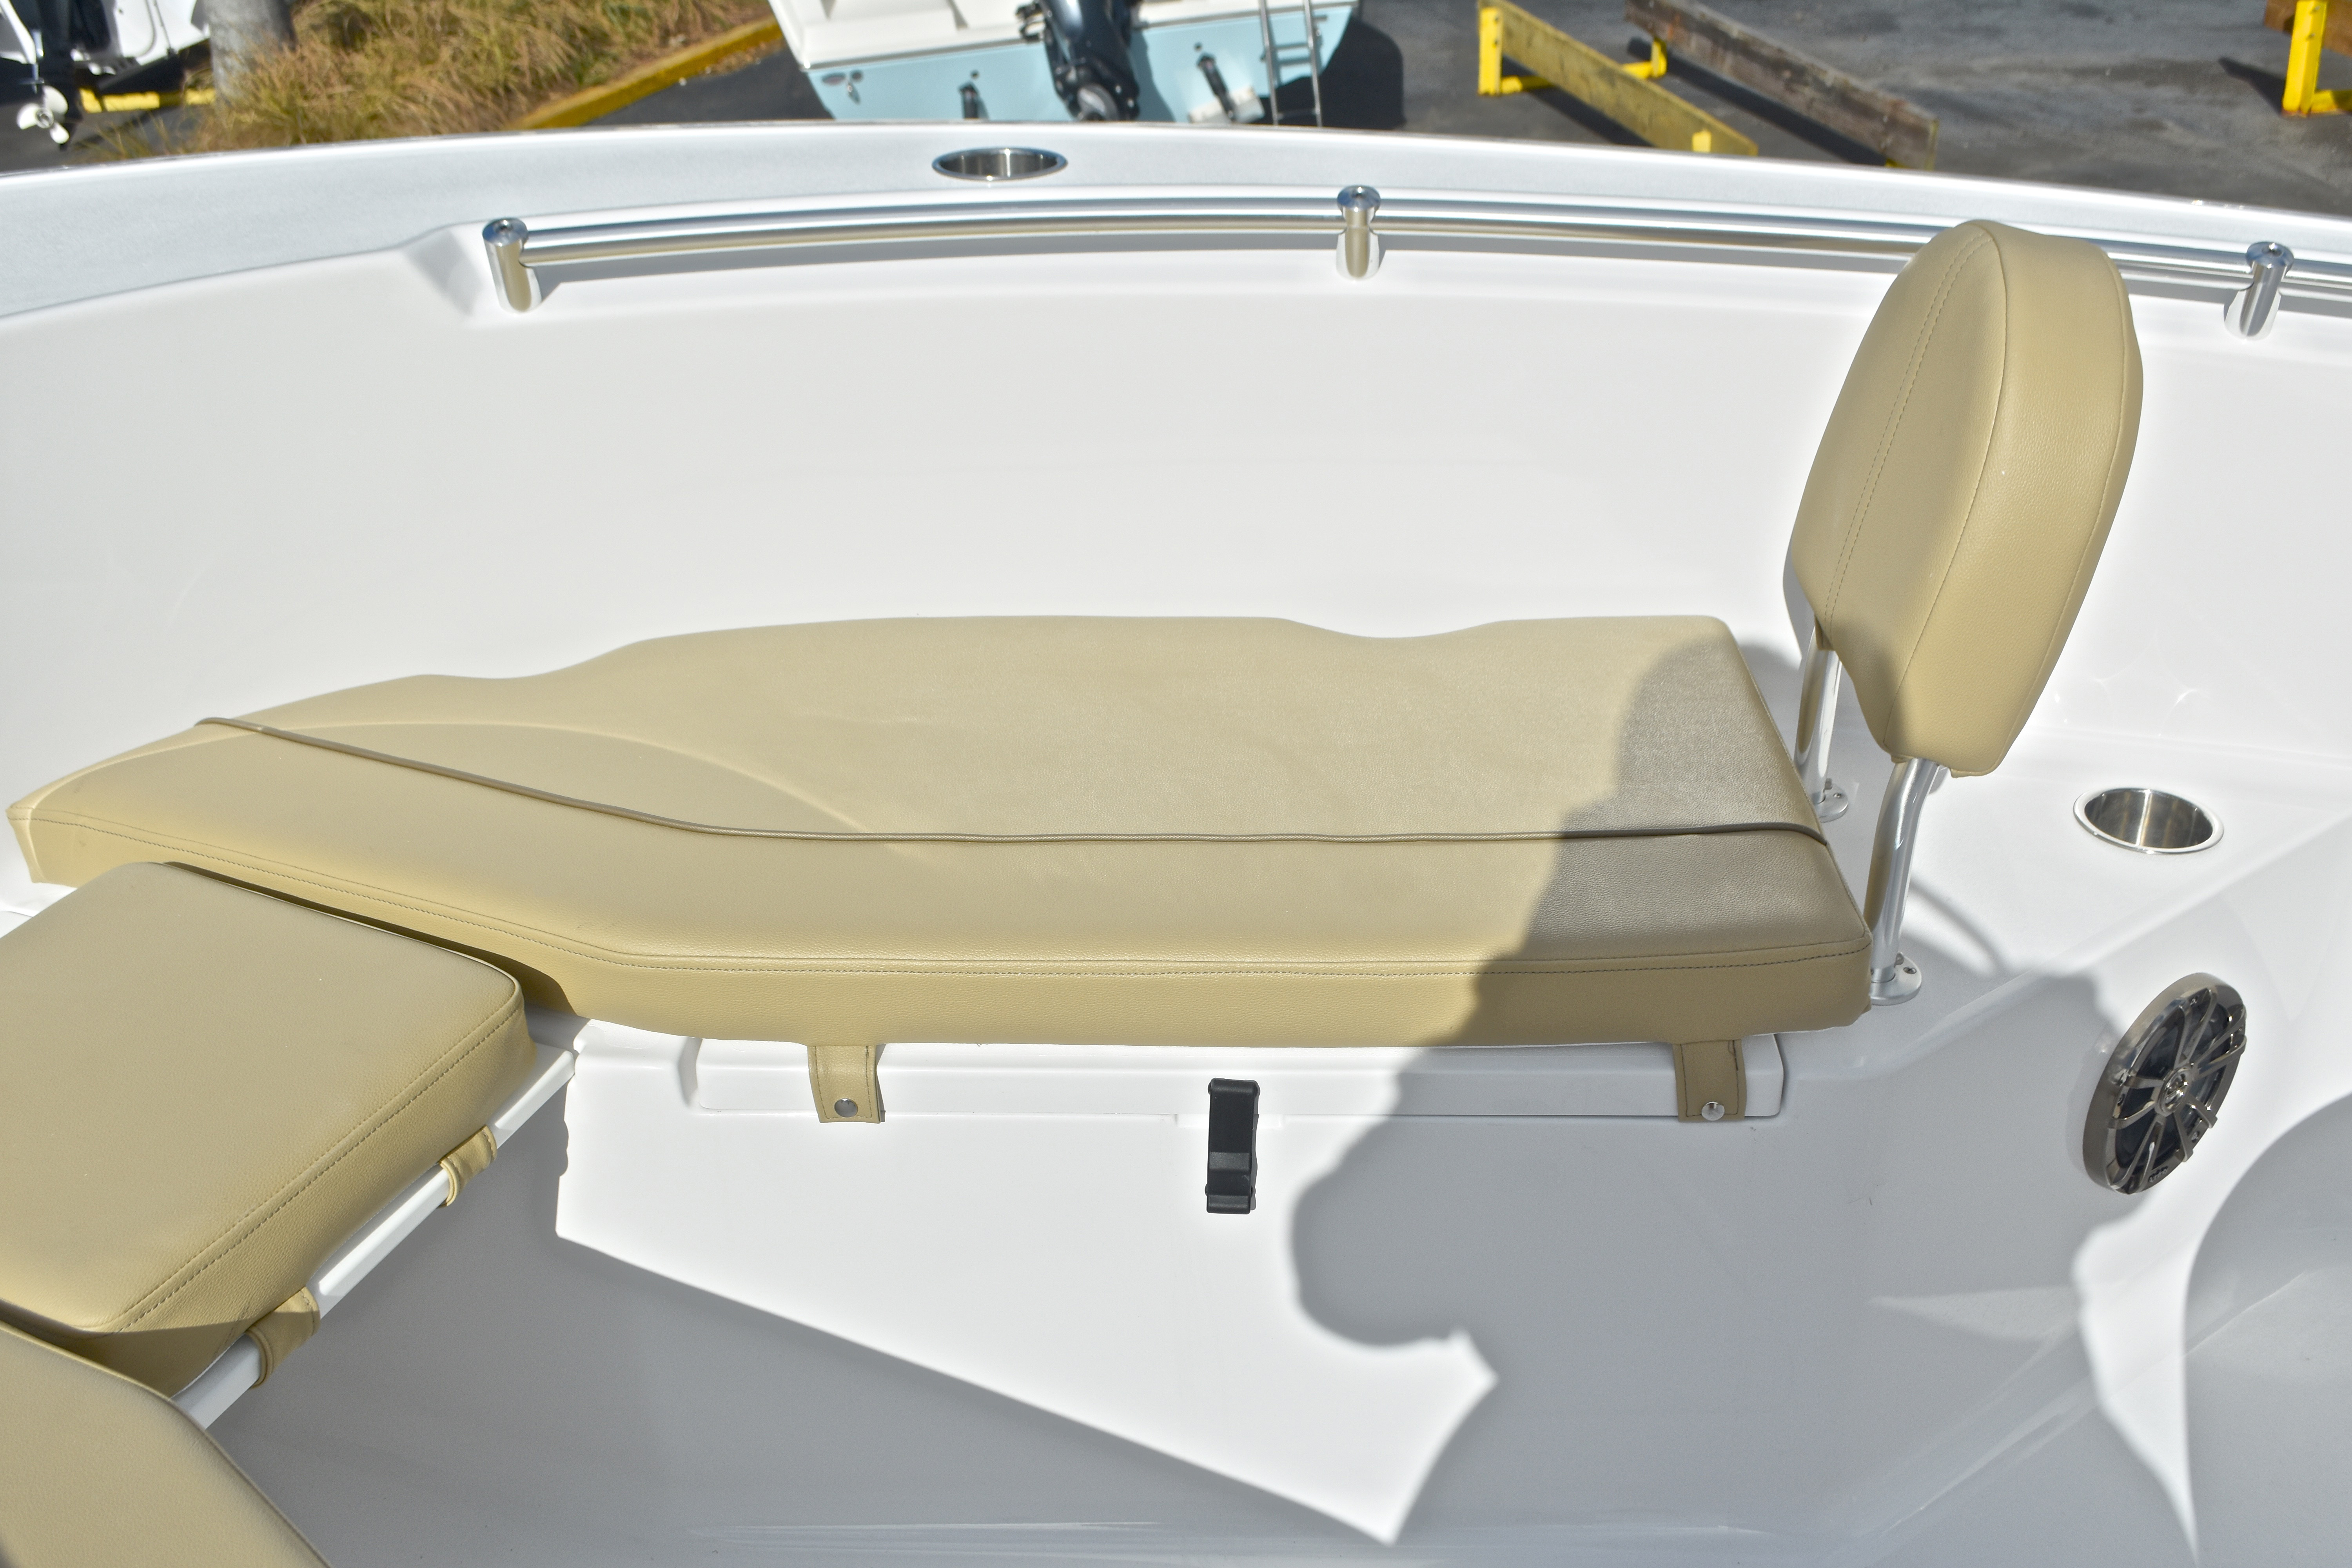 Thumbnail 57 for New 2017 Sportsman Open 232 Center Console boat for sale in West Palm Beach, FL